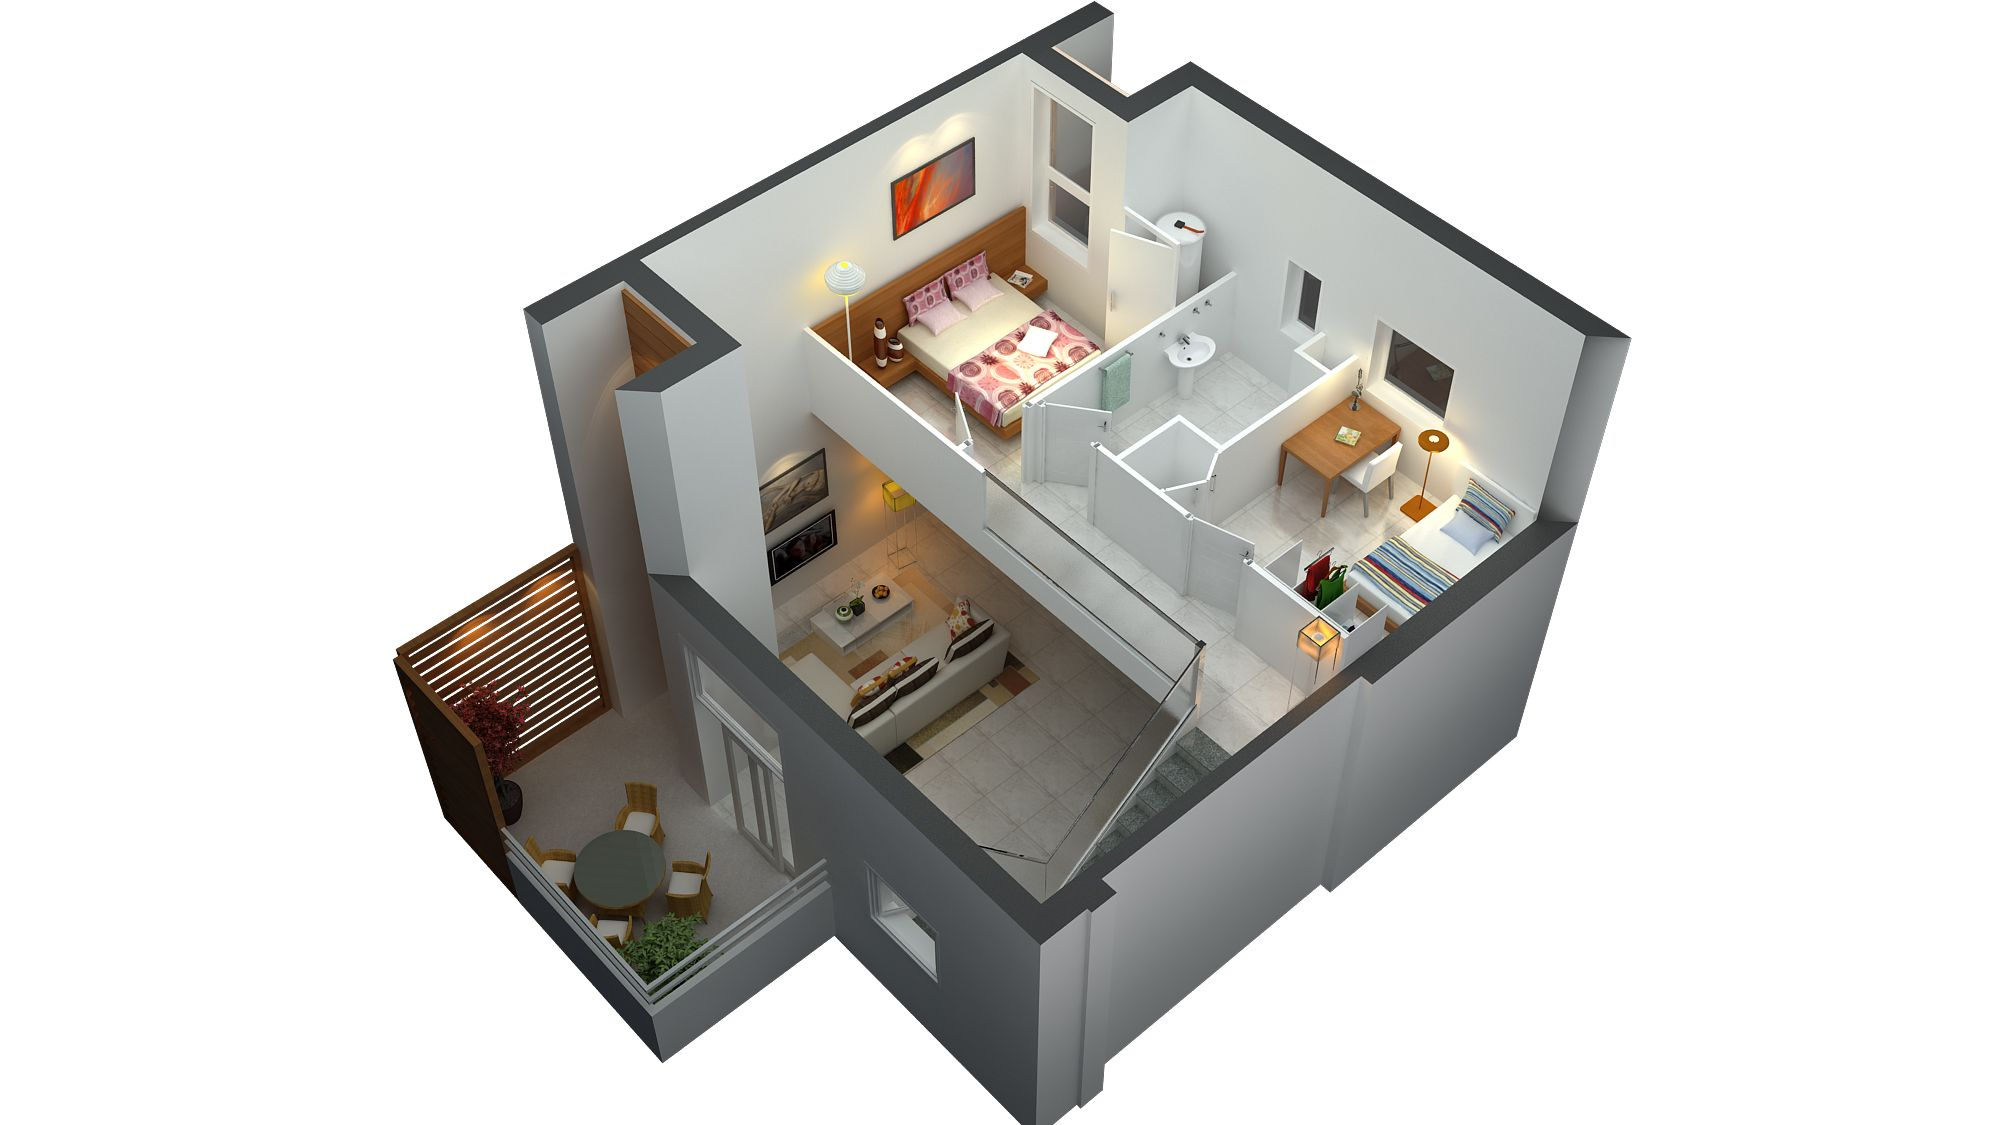 3d floor plan small house plans pinterest 3d for Very simple small house plans